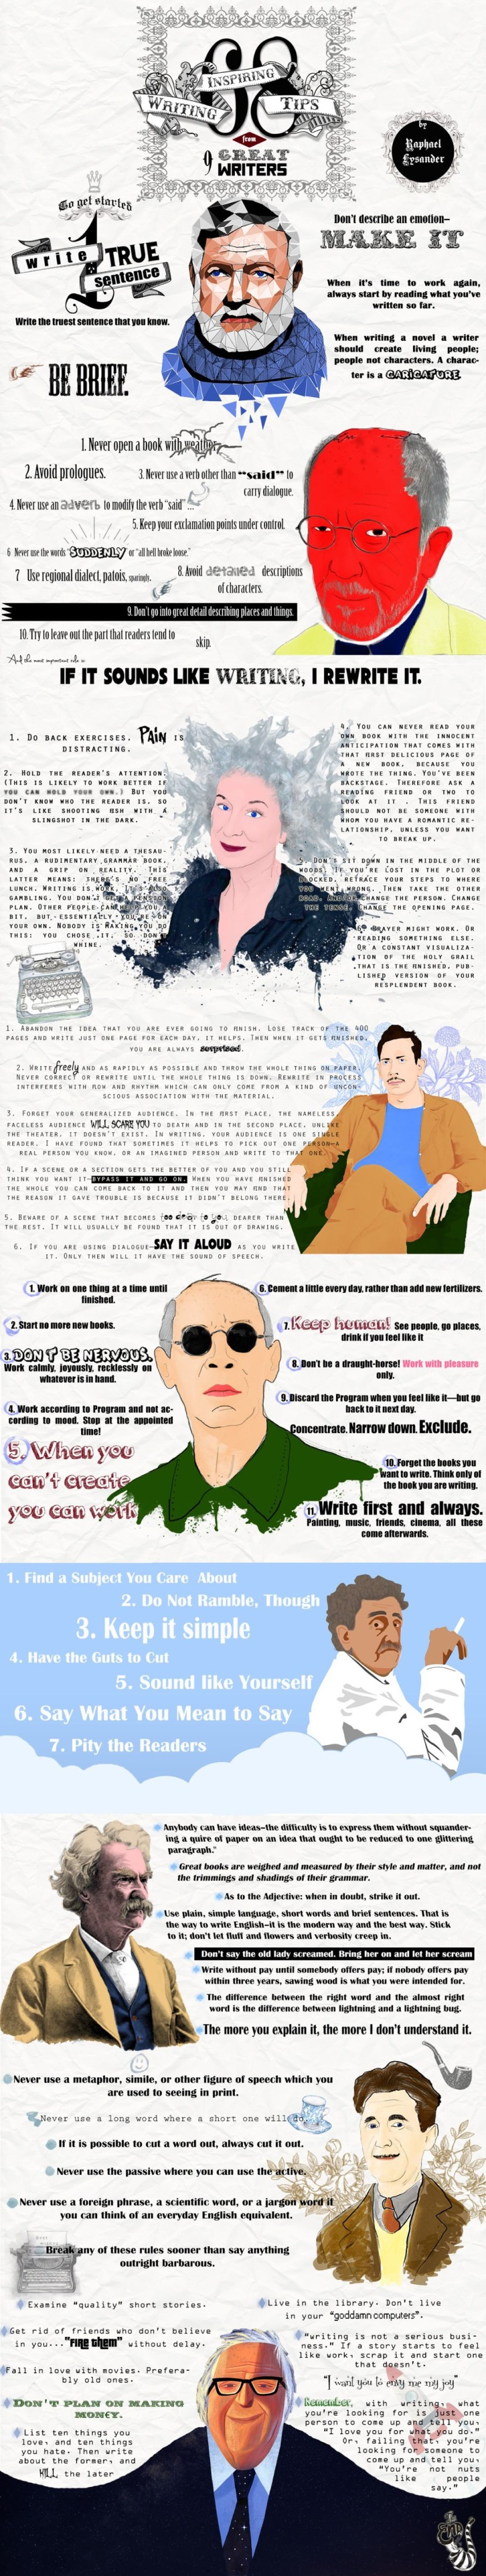 Infographic writing tips from famous writers